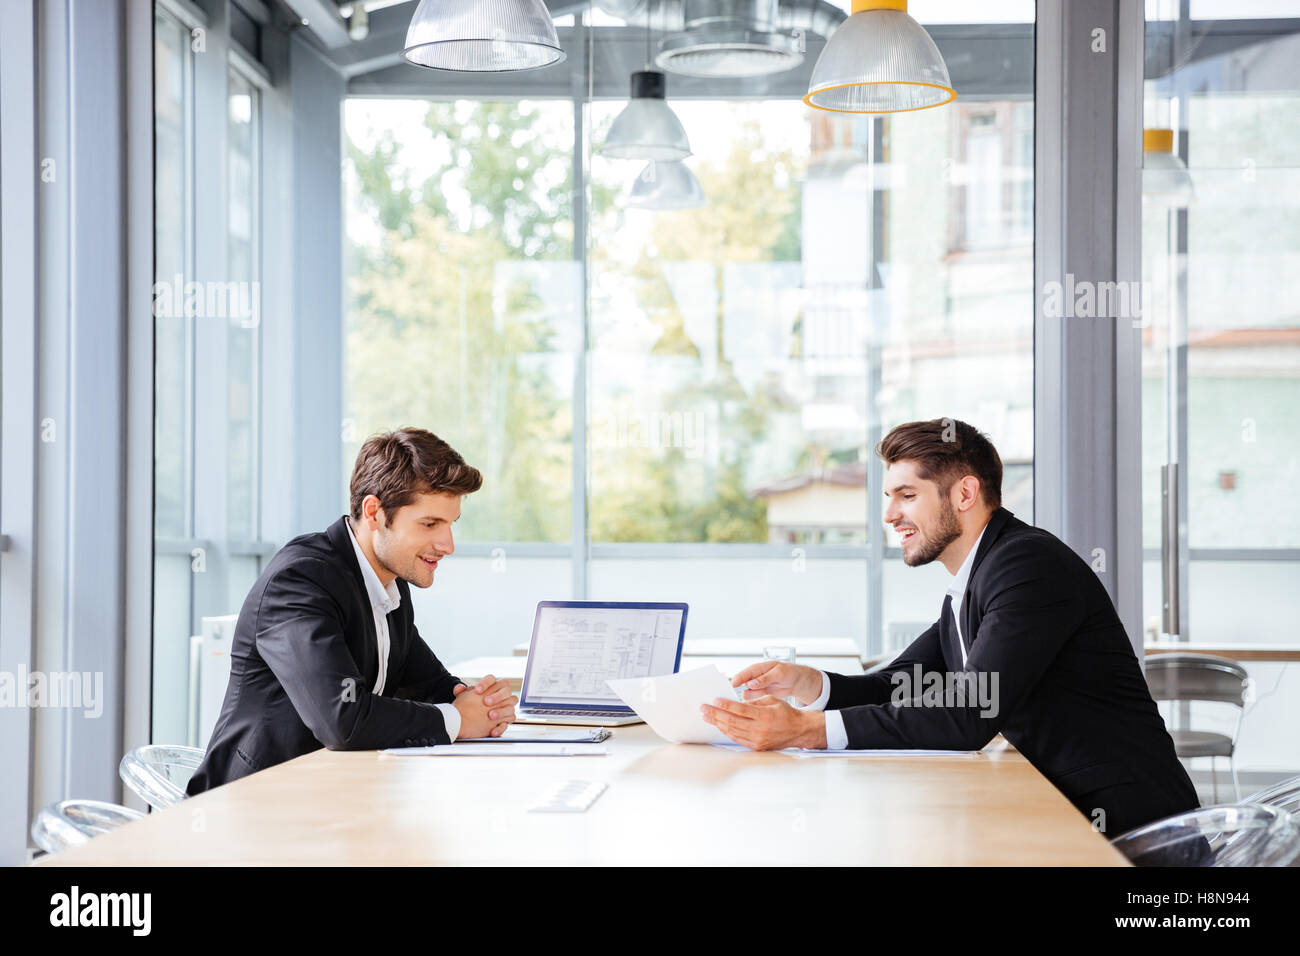 Two happy young businessmen working together using laptop on business meeting in office - Stock Image